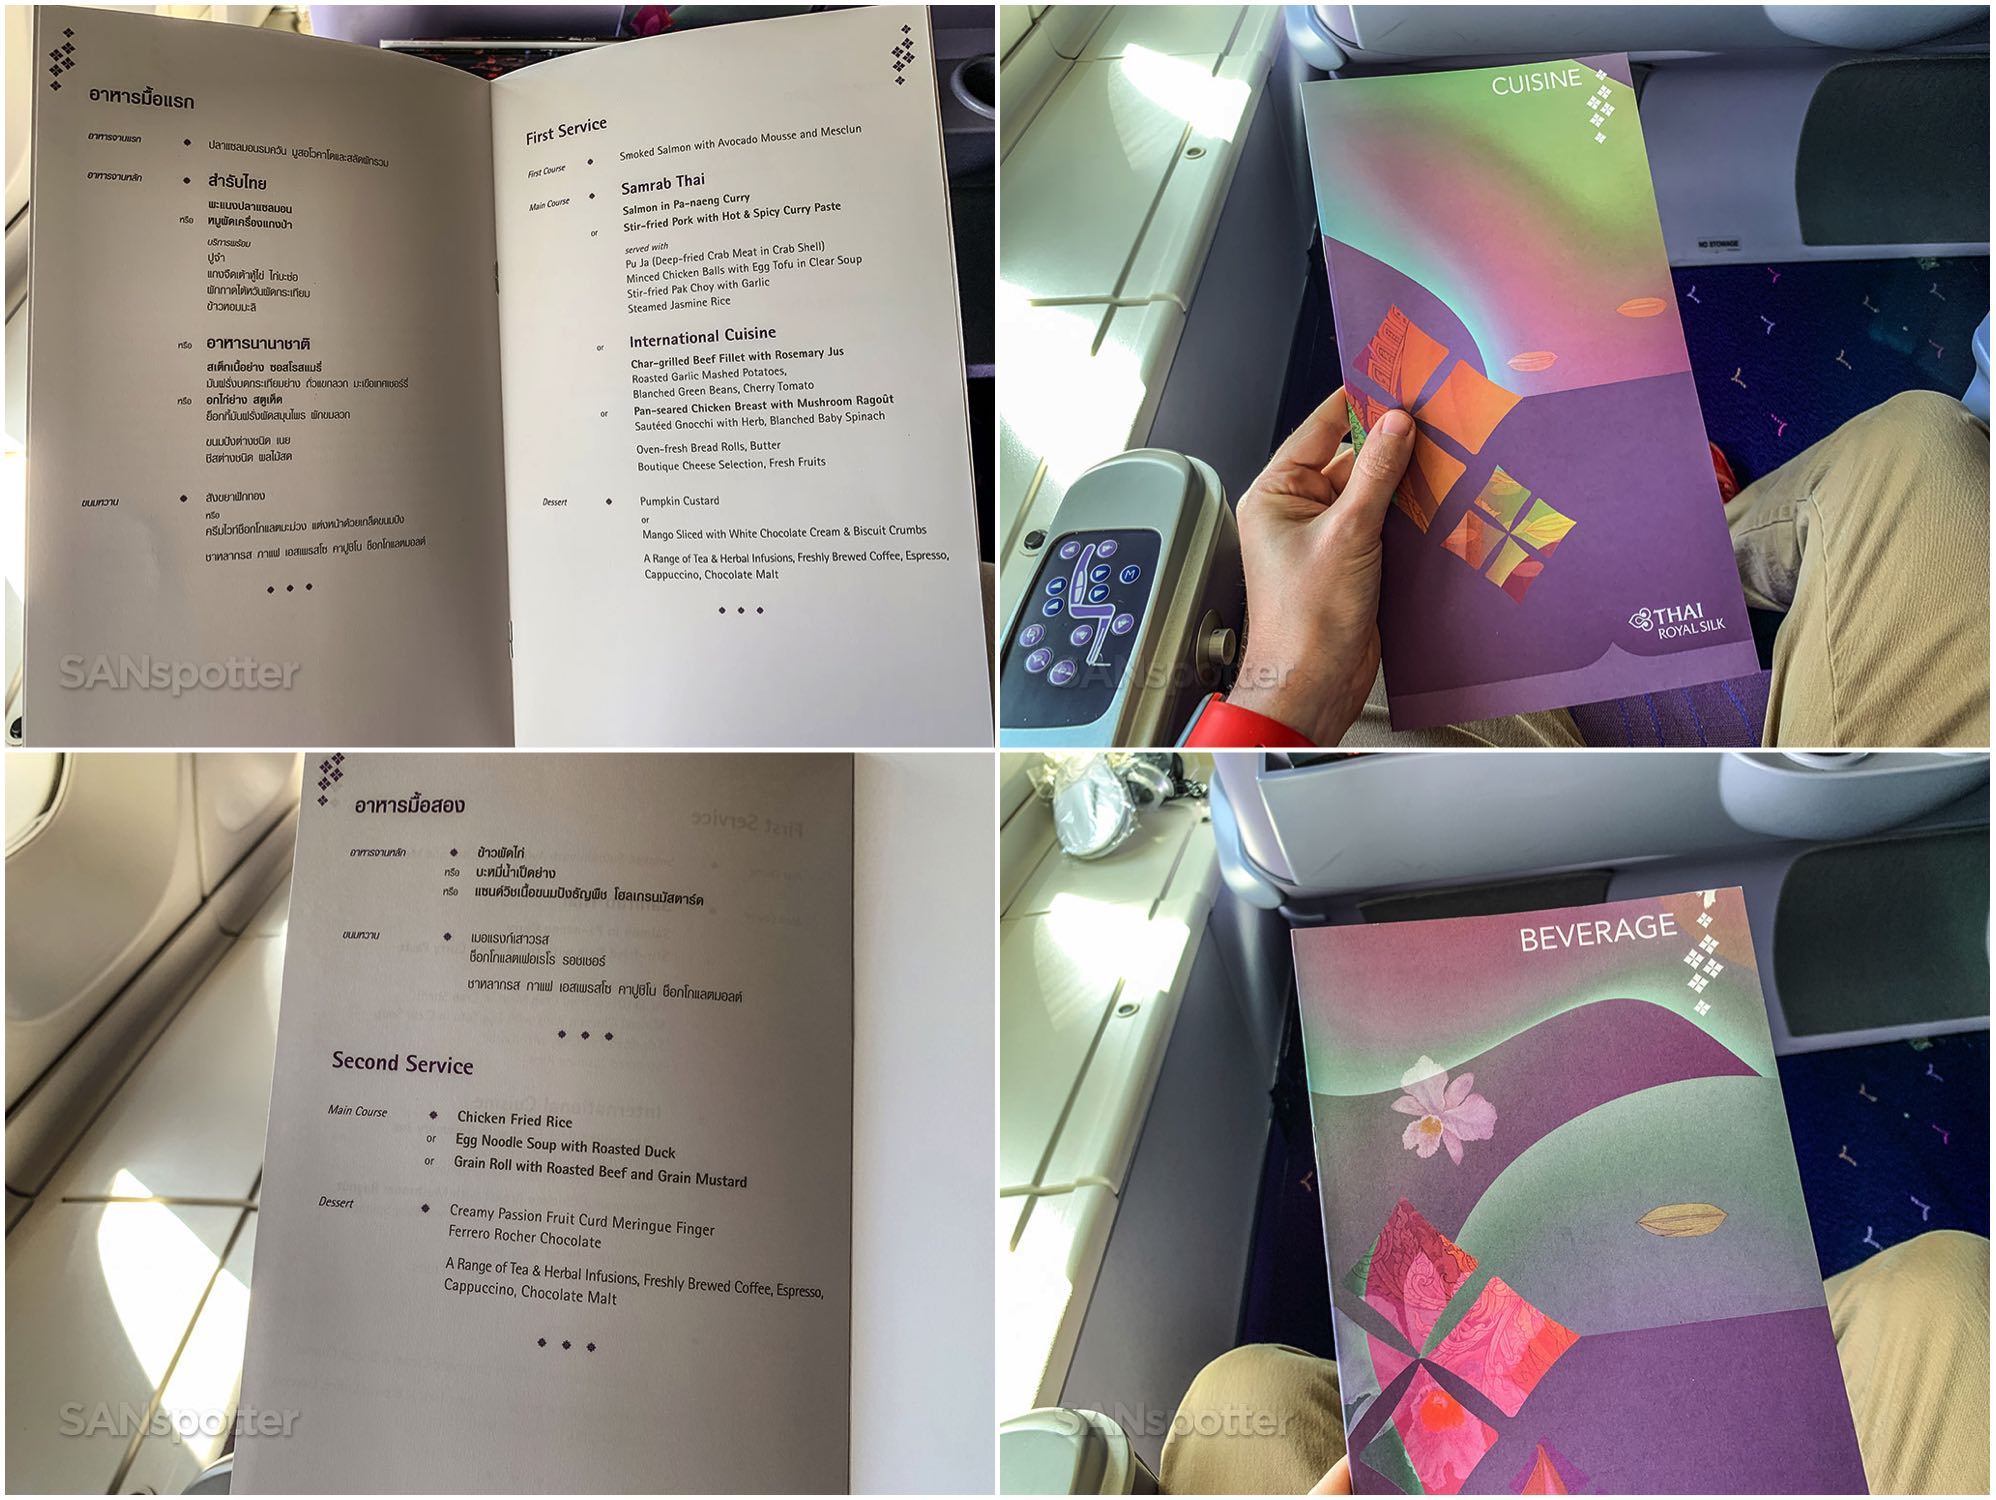 Thai Airways business class menu